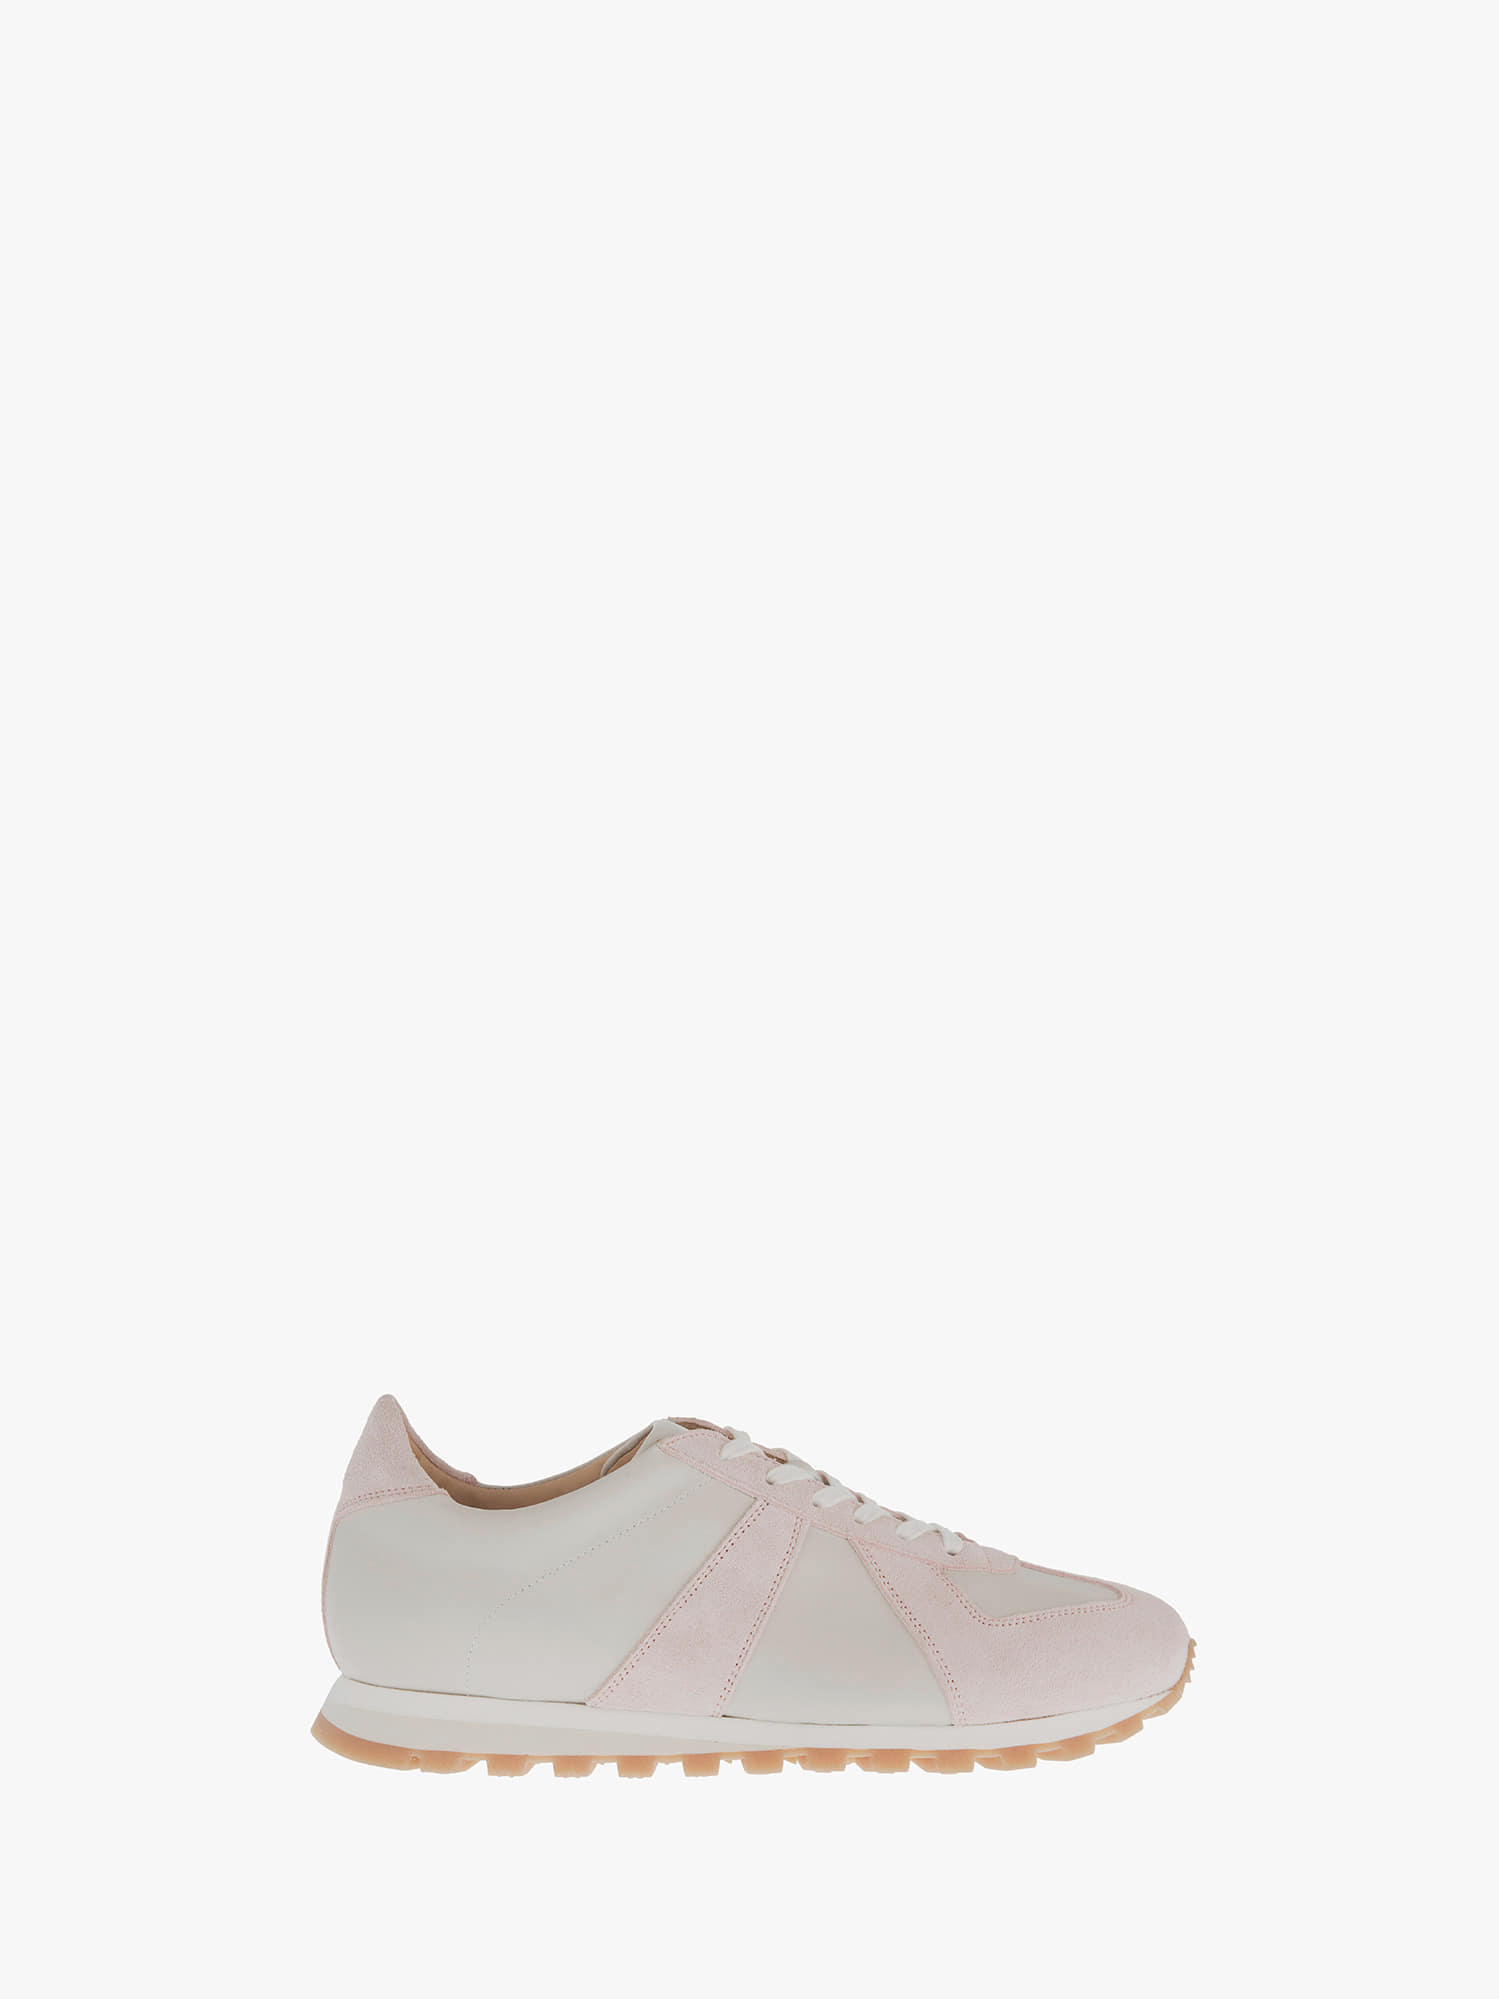 balmoral 07 suede leather blush